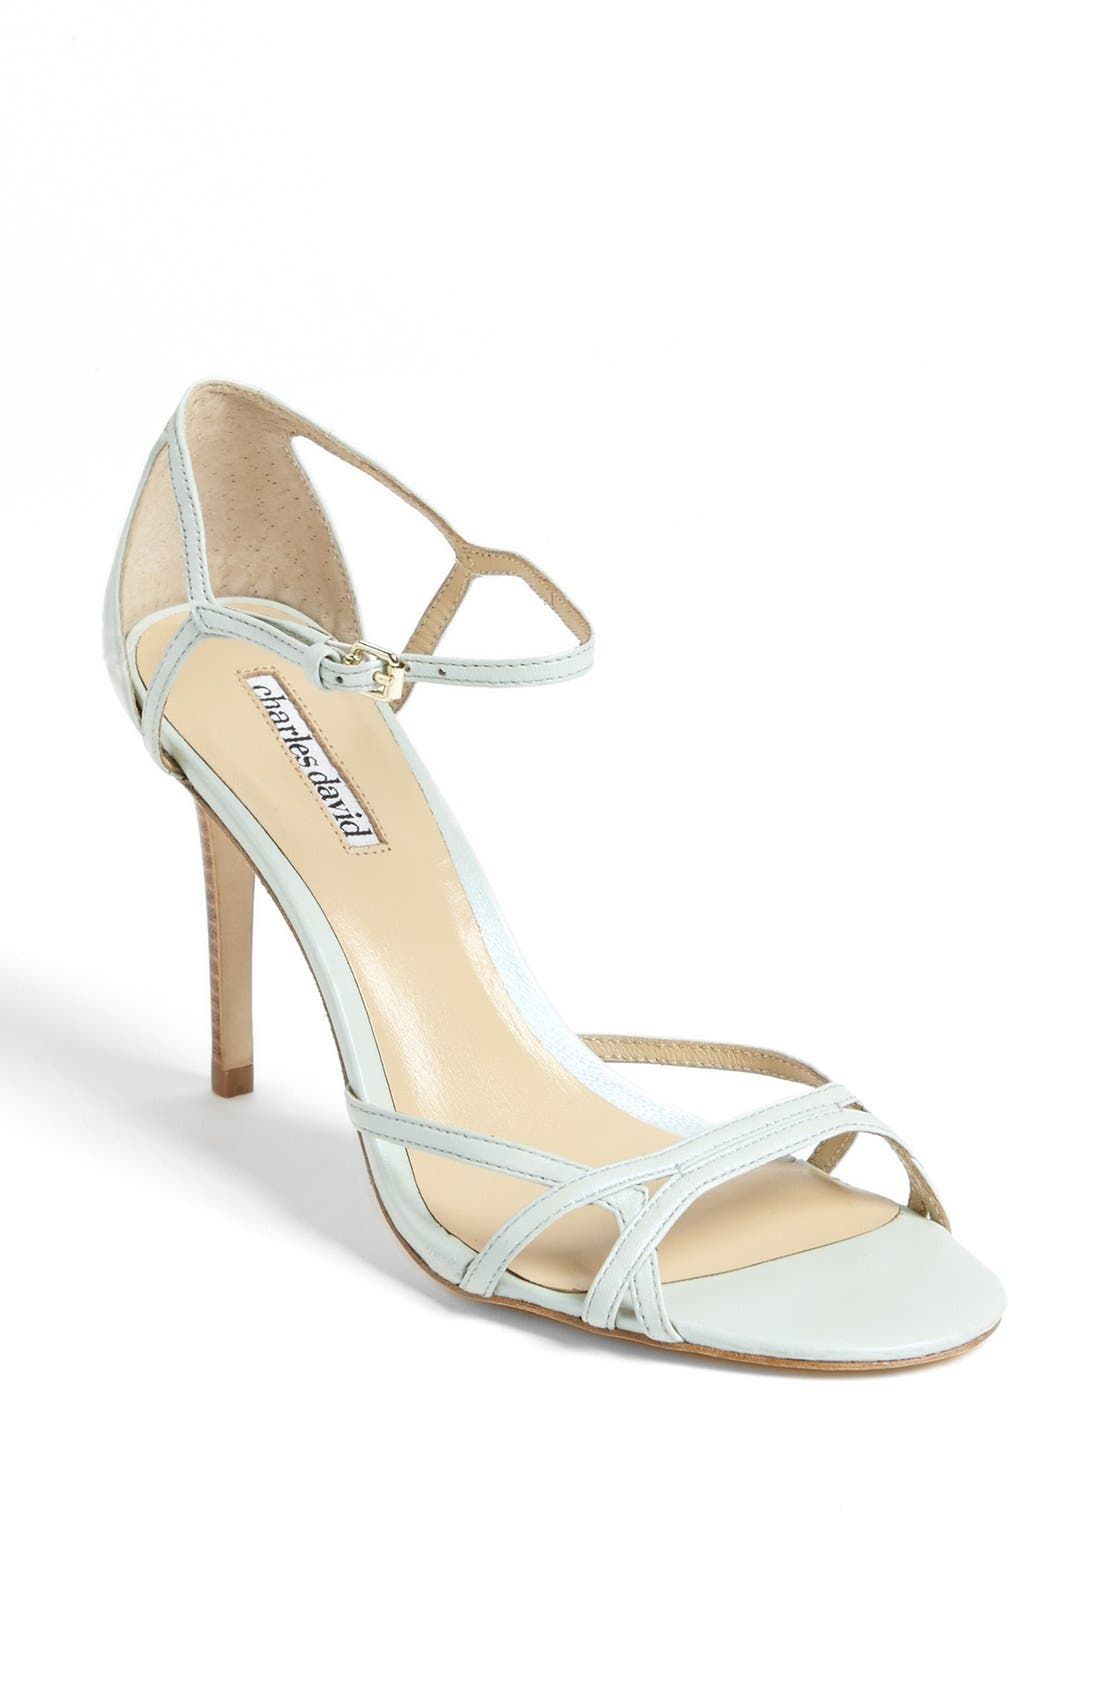 Alternate Image 1 Selected - Charles David 'Ionela' Sandal